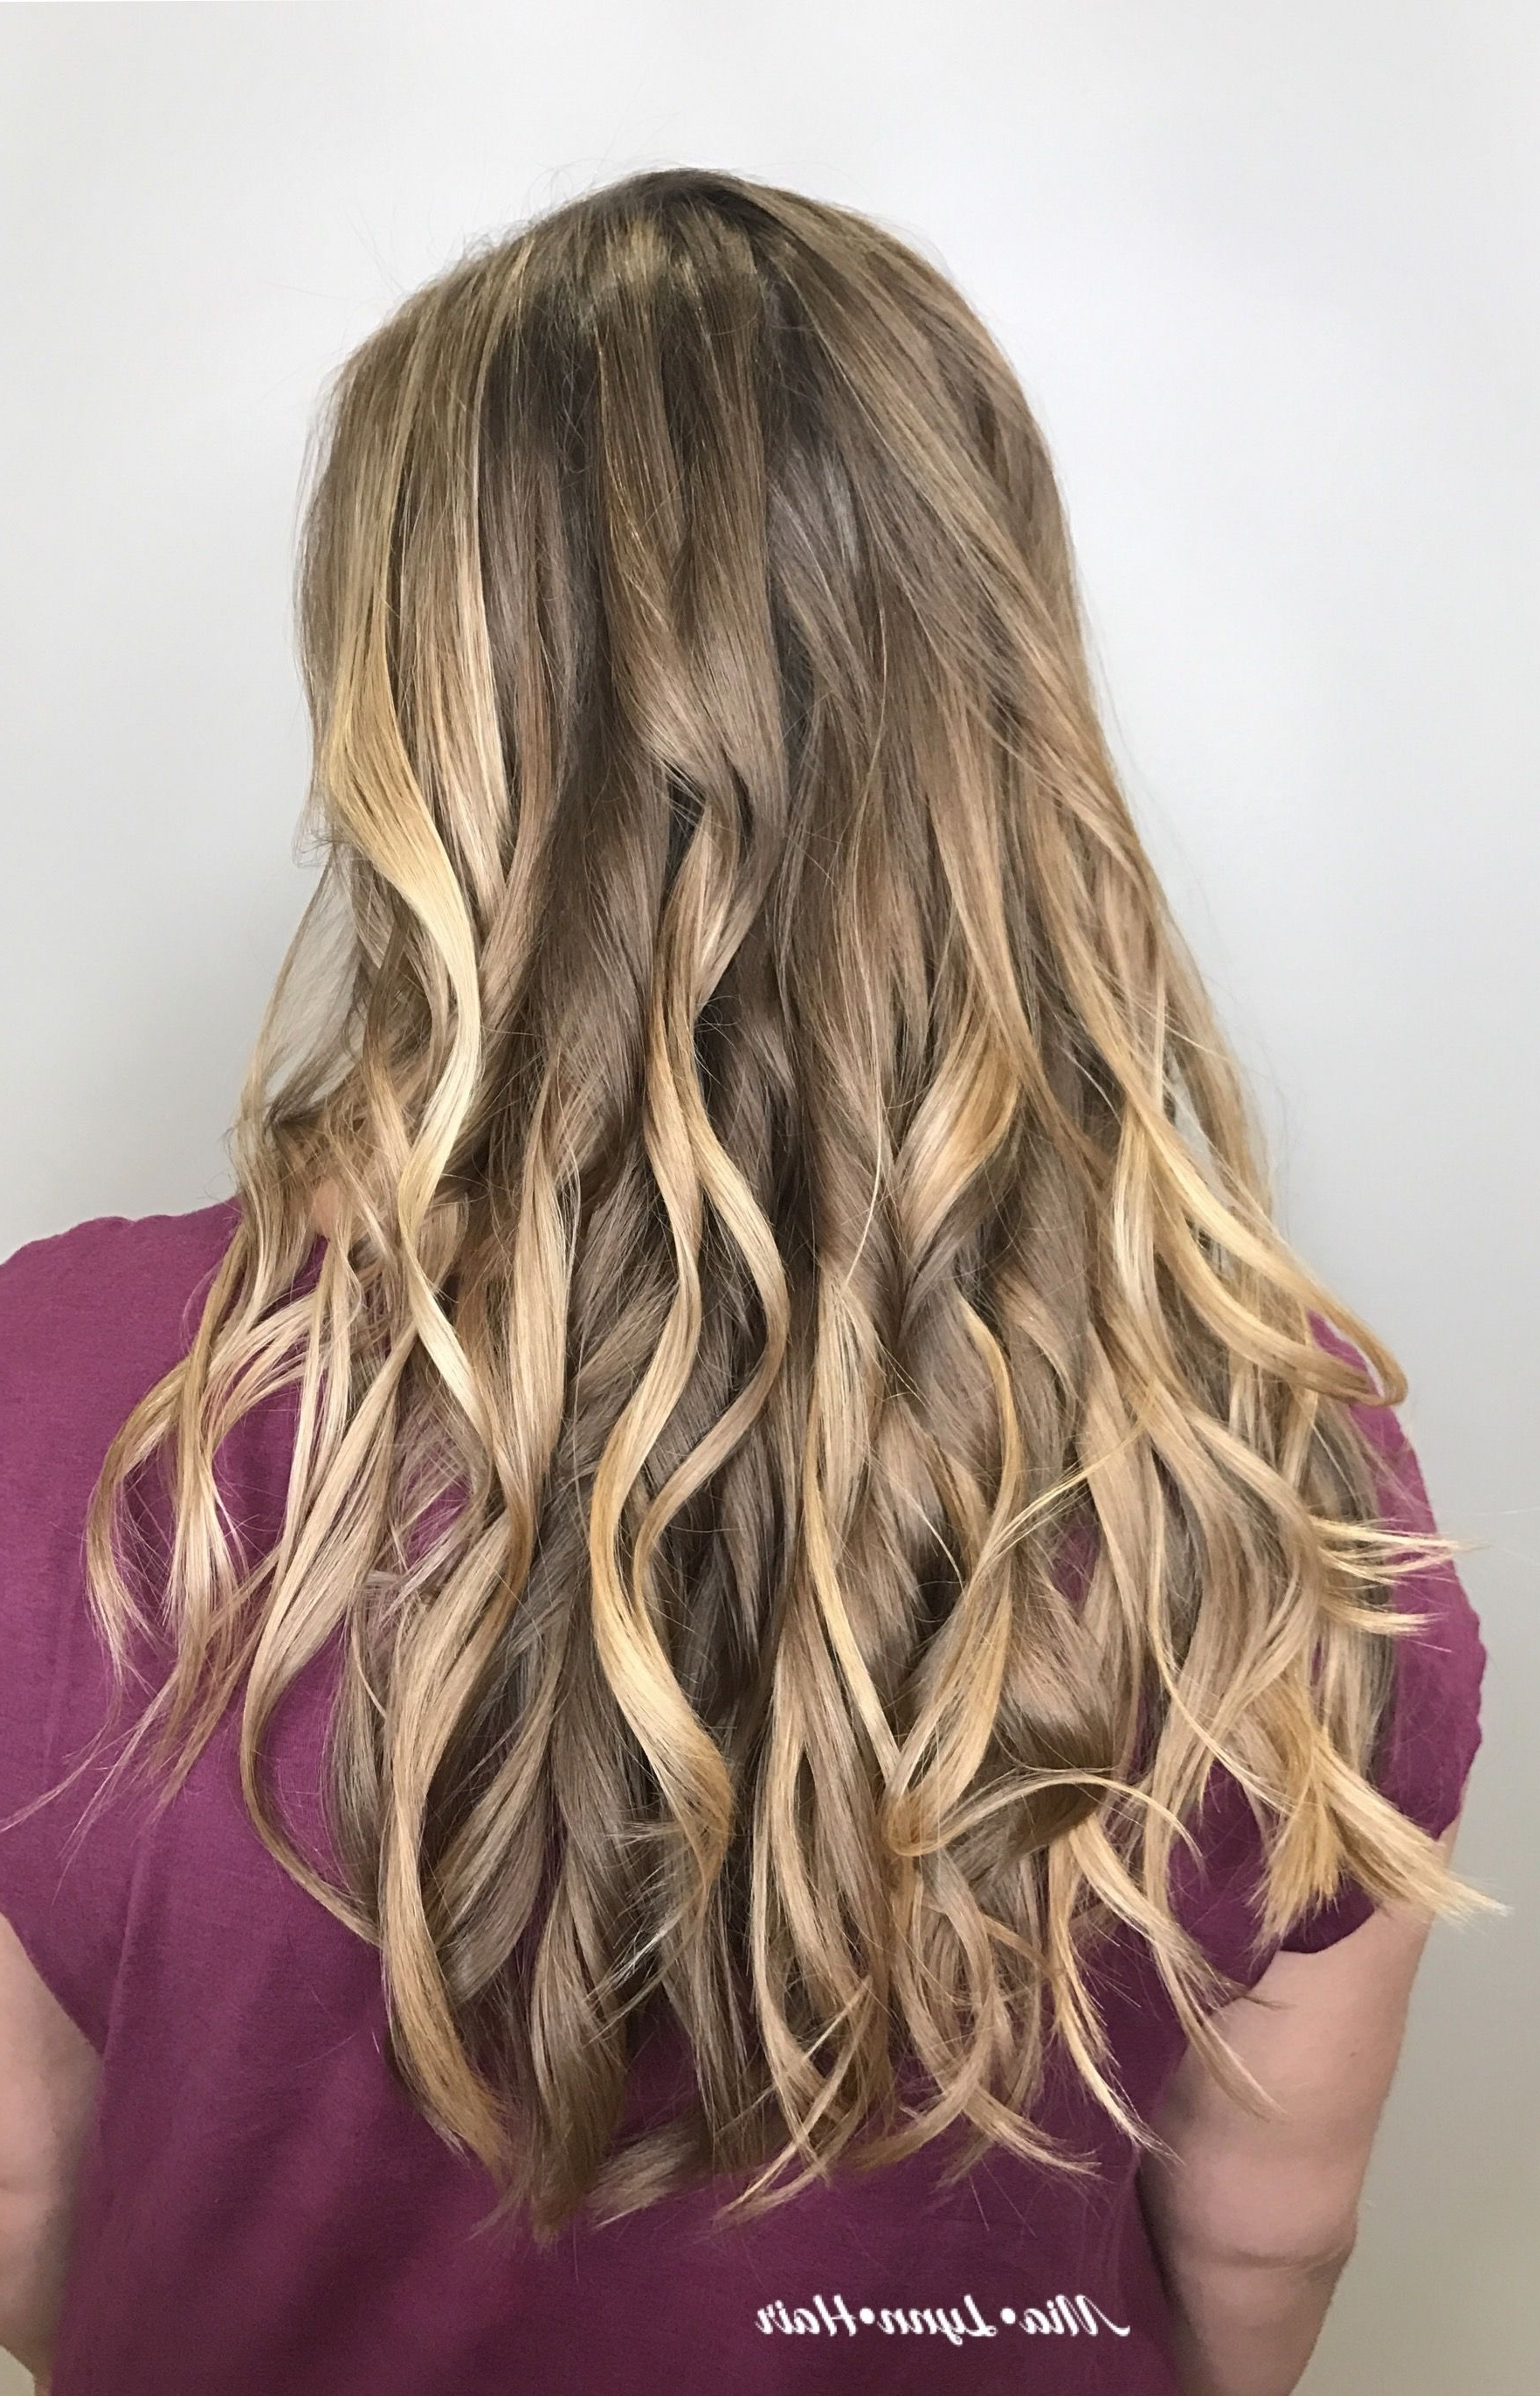 Balayage, Foilayage, Blonde Brunette, Bronde, Warm Balayage Regarding Widely Used Bronde Beach Waves Blonde Hairstyles (View 3 of 20)